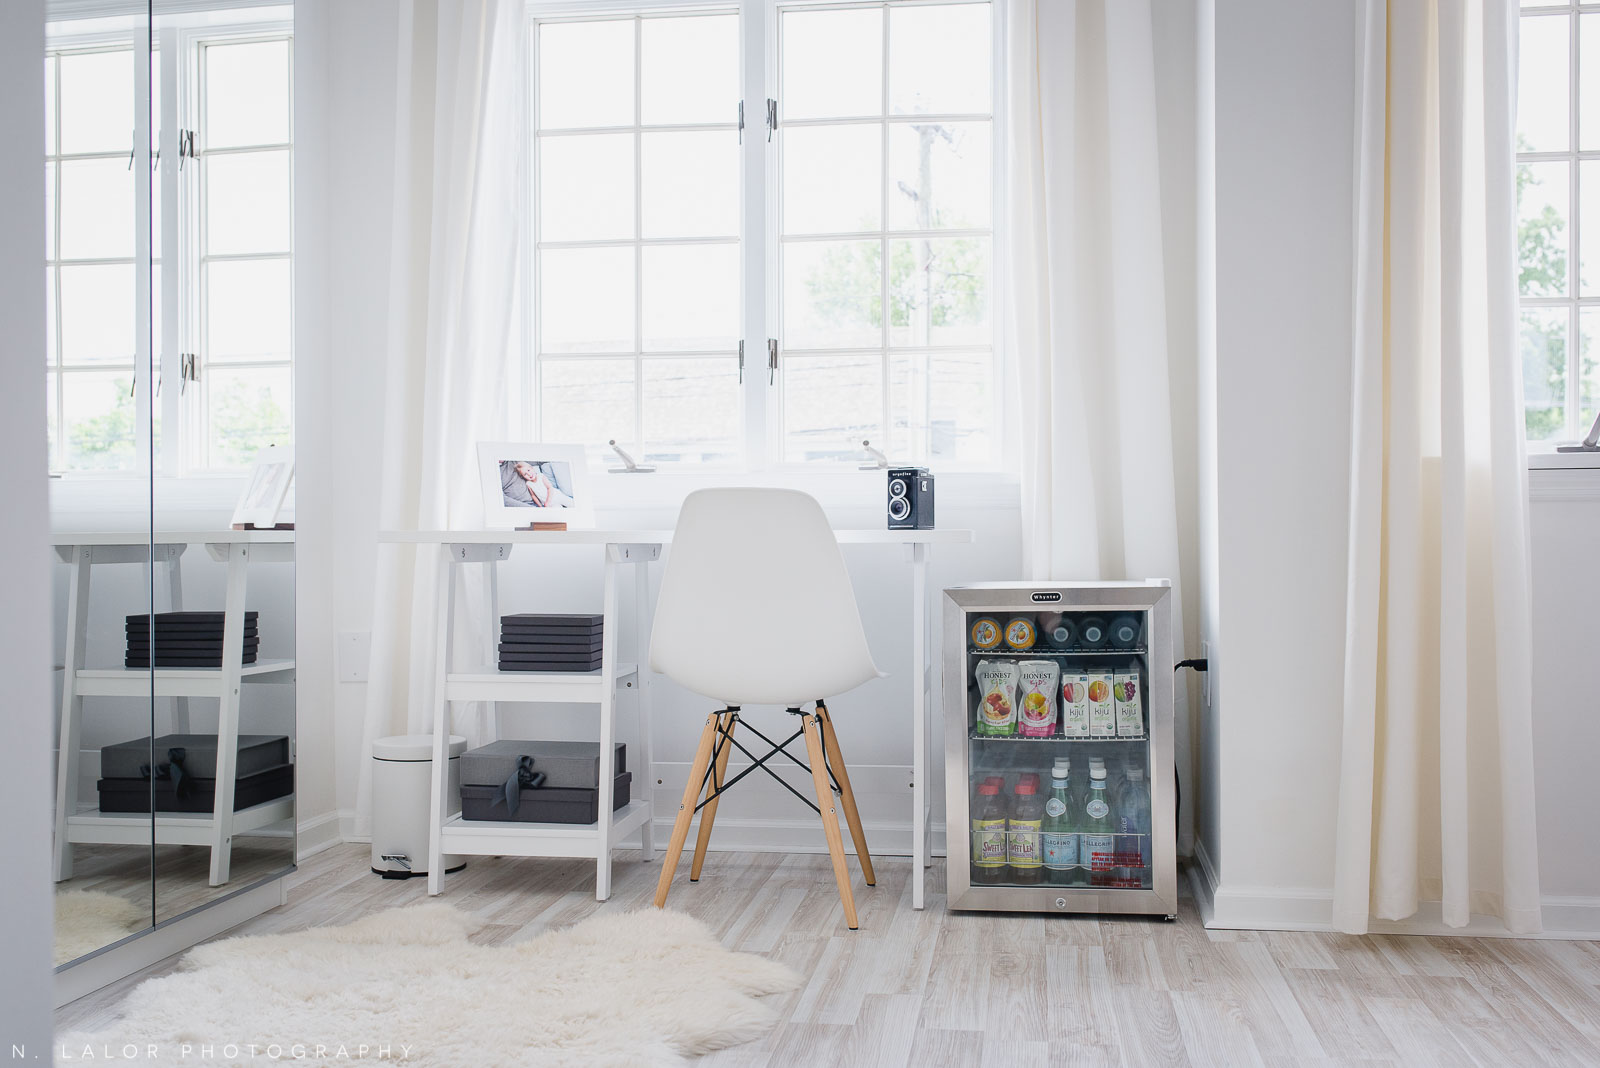 Working area with mini beverage center.